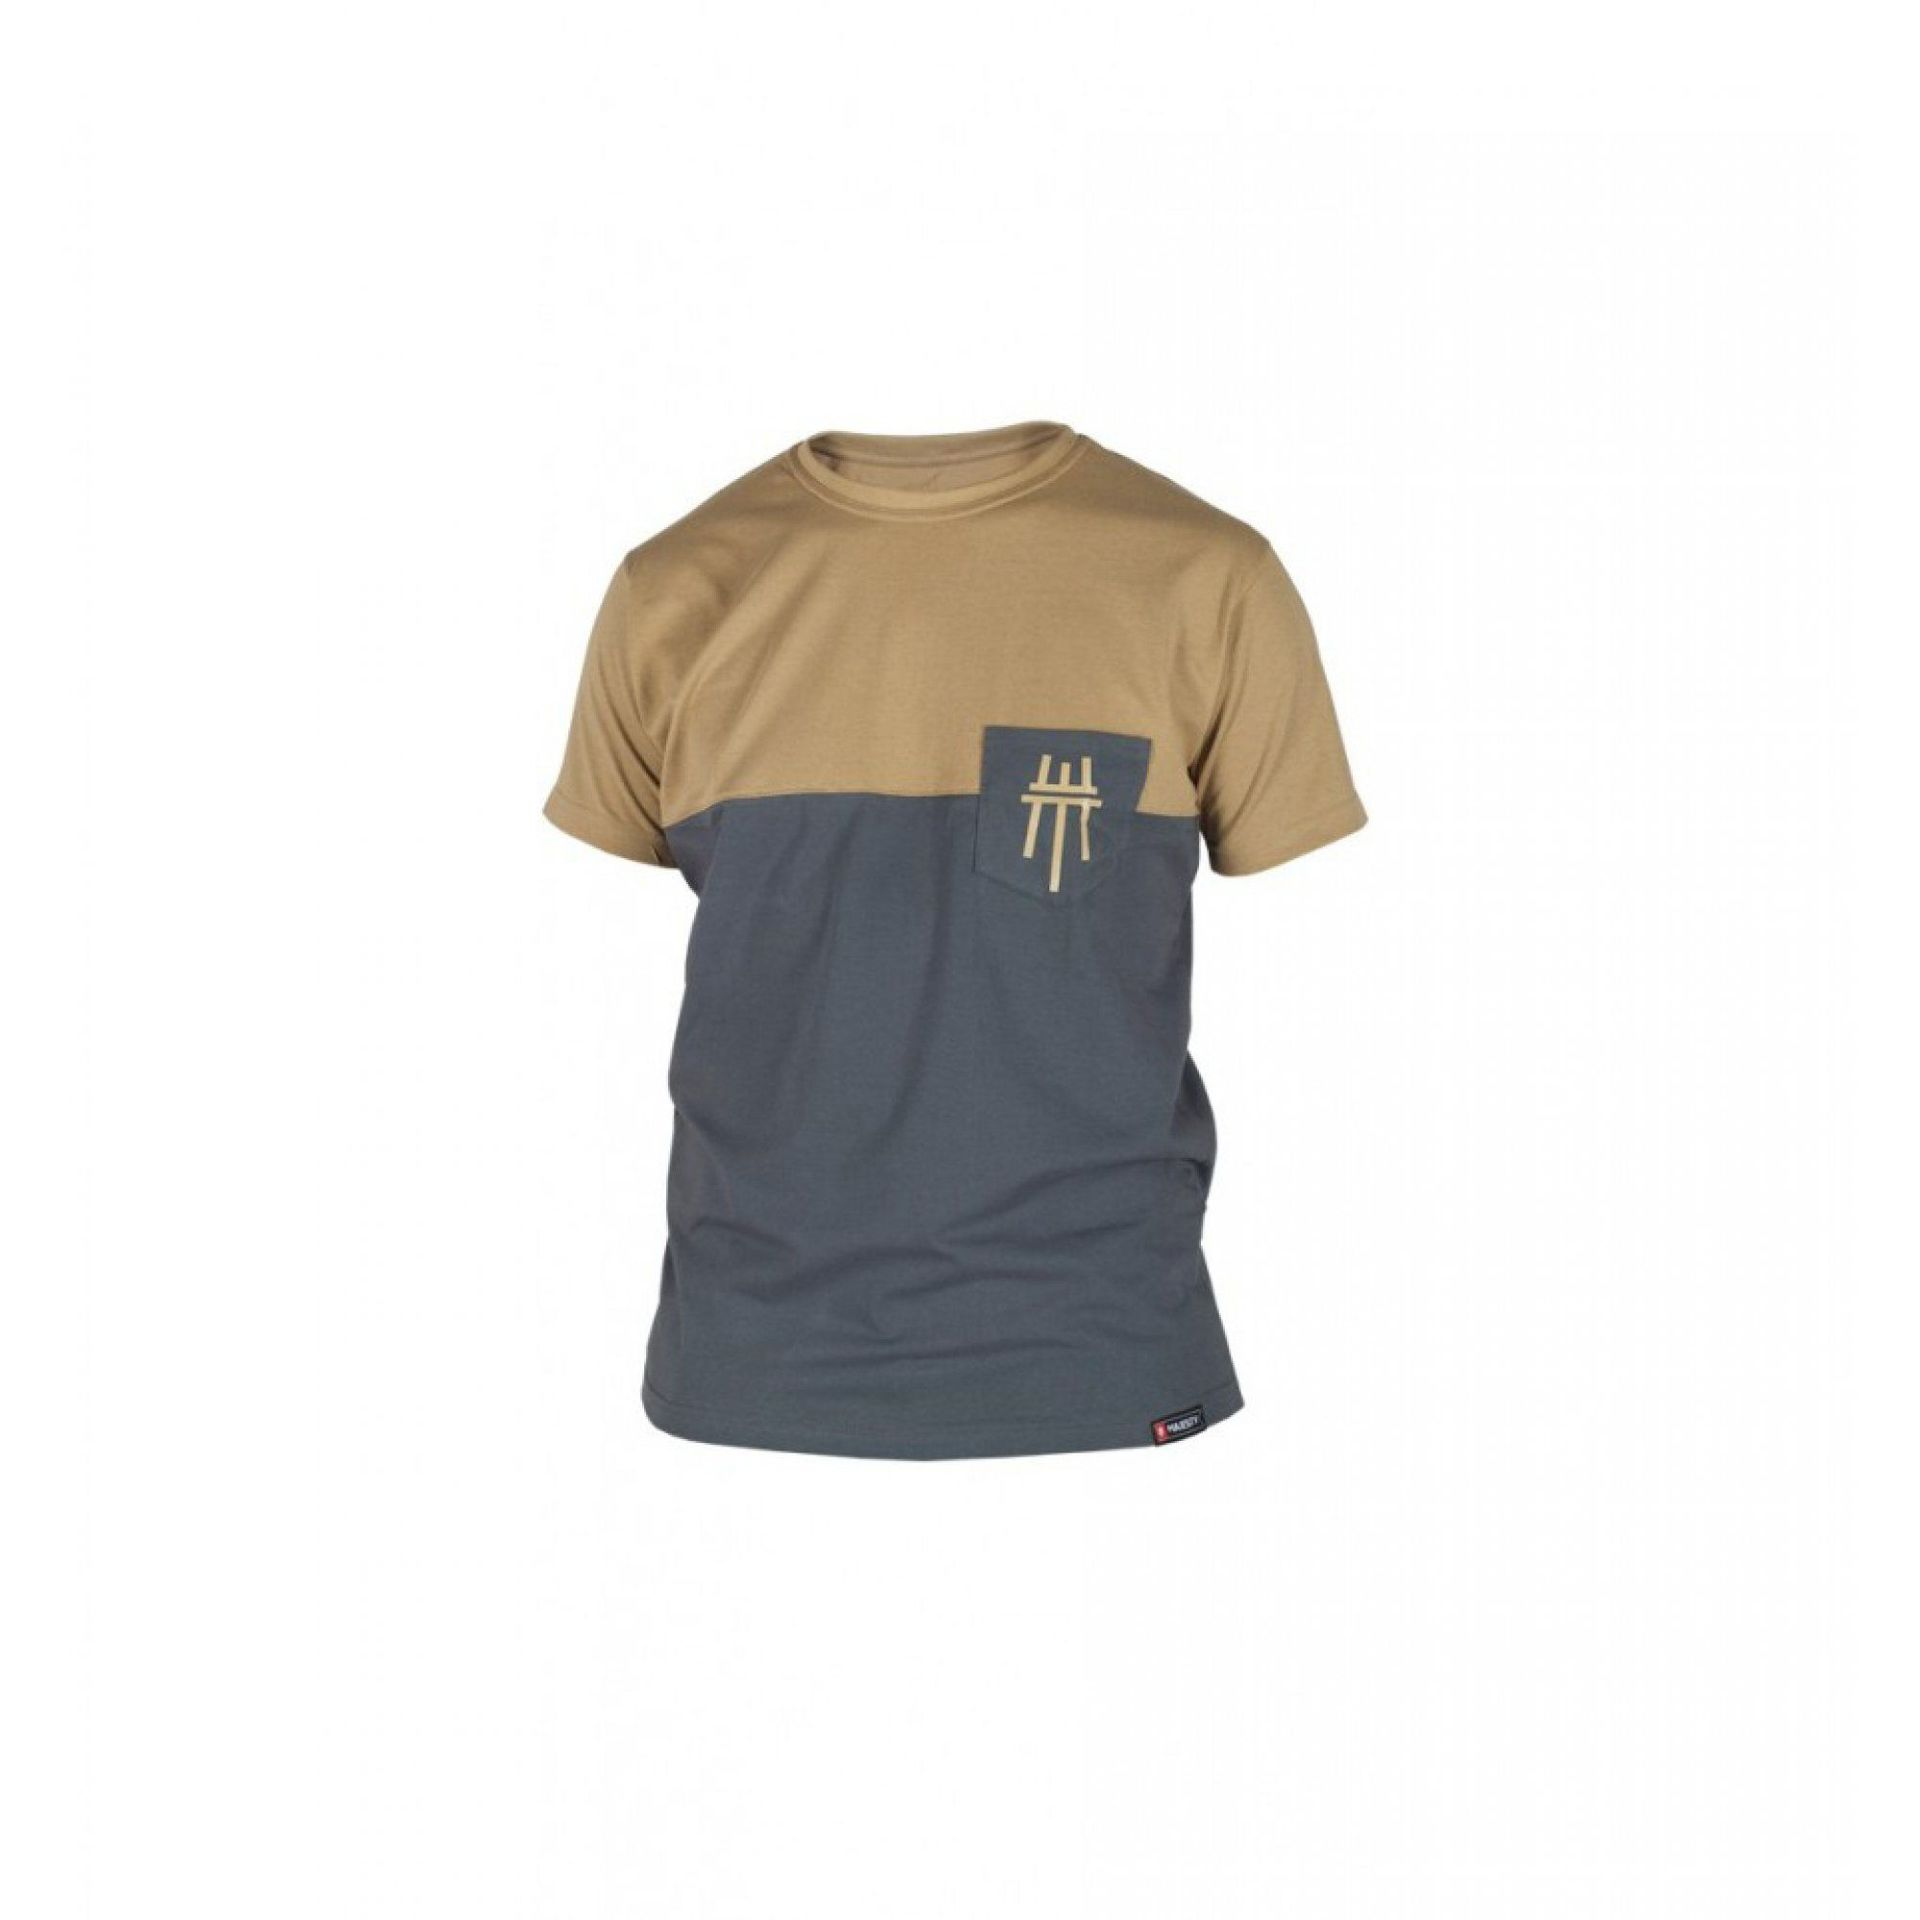 T-SHIRT MAJESTY DOPPLER GREY|BROWN